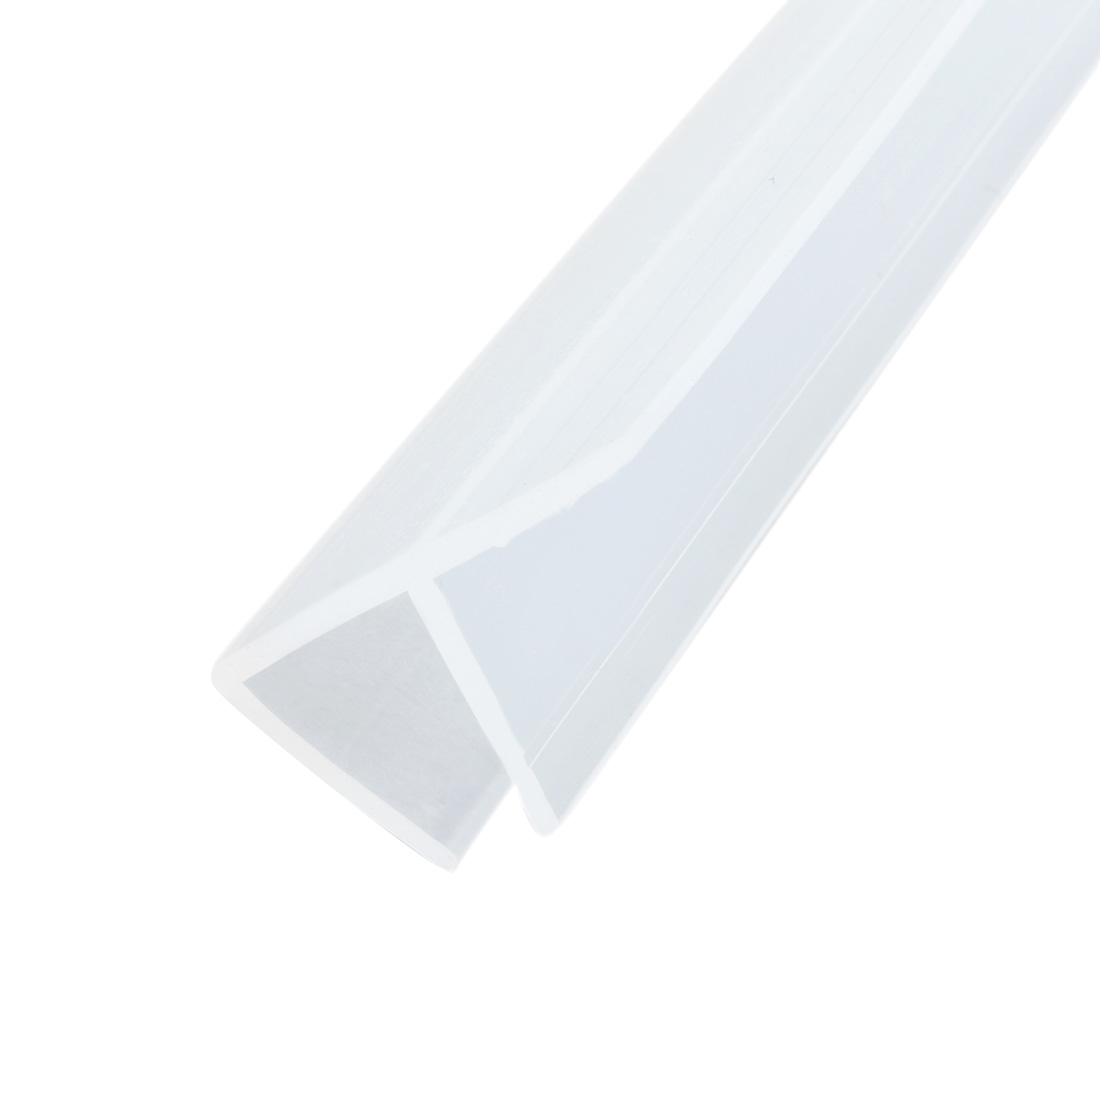 78.7-inch F Shaped Frameless Window Shower Door Seal Clear for 10mm (approx 3/8-inch) Glass